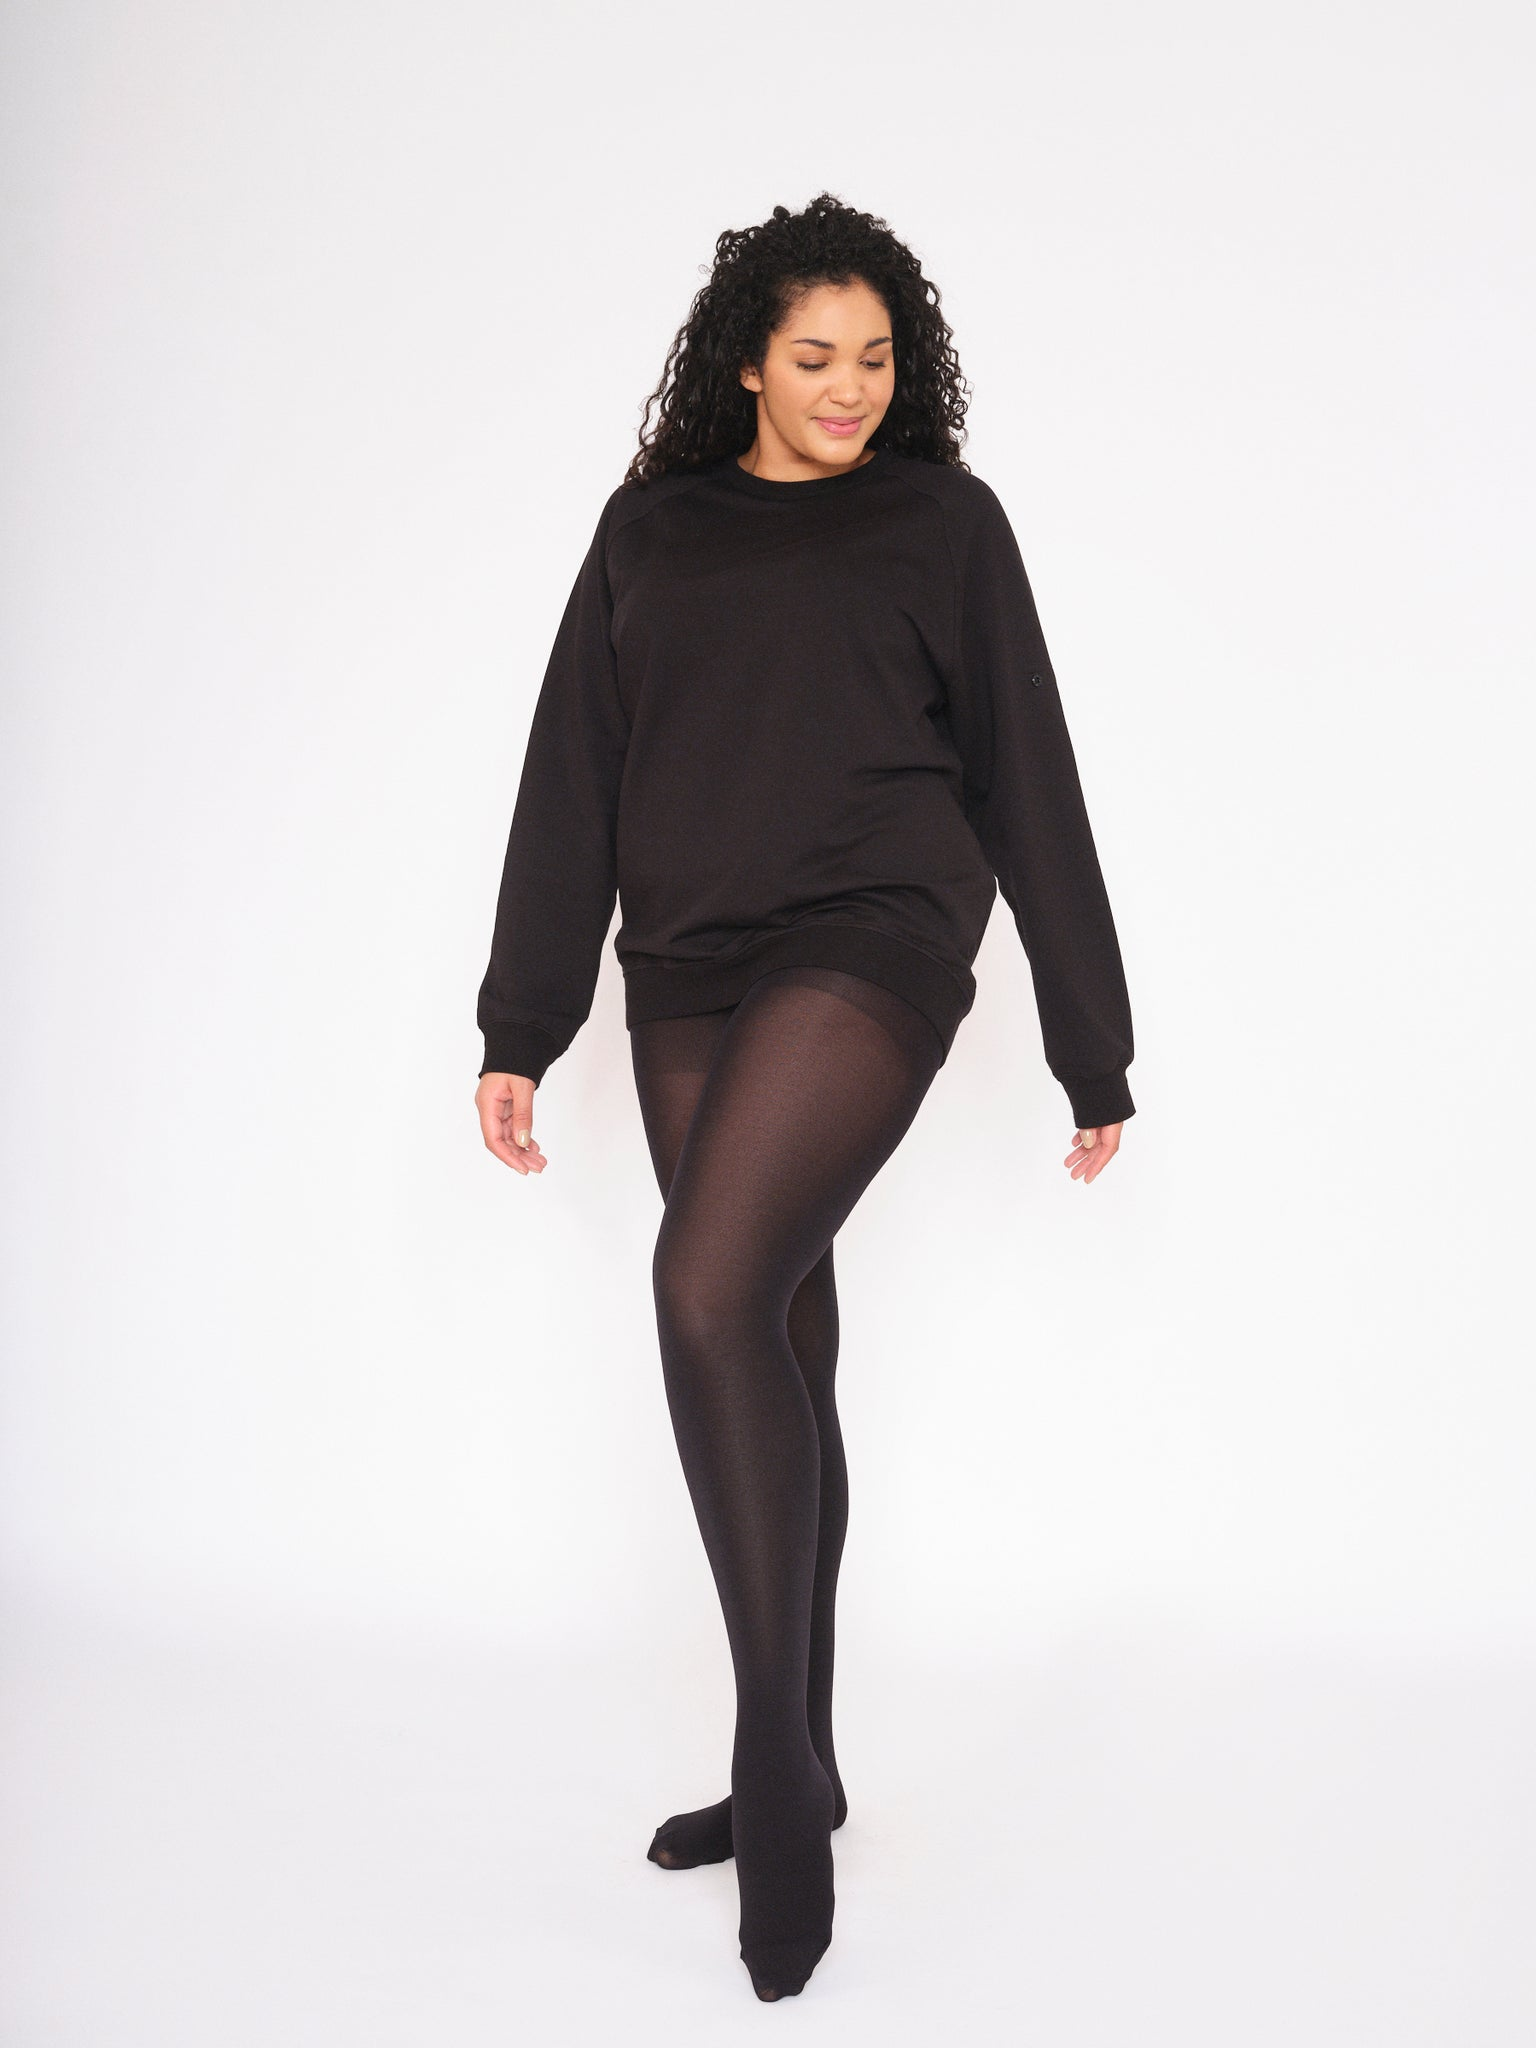 MS. SHAPE Comfortable Opaque Tights 80 Denier Black & Colors